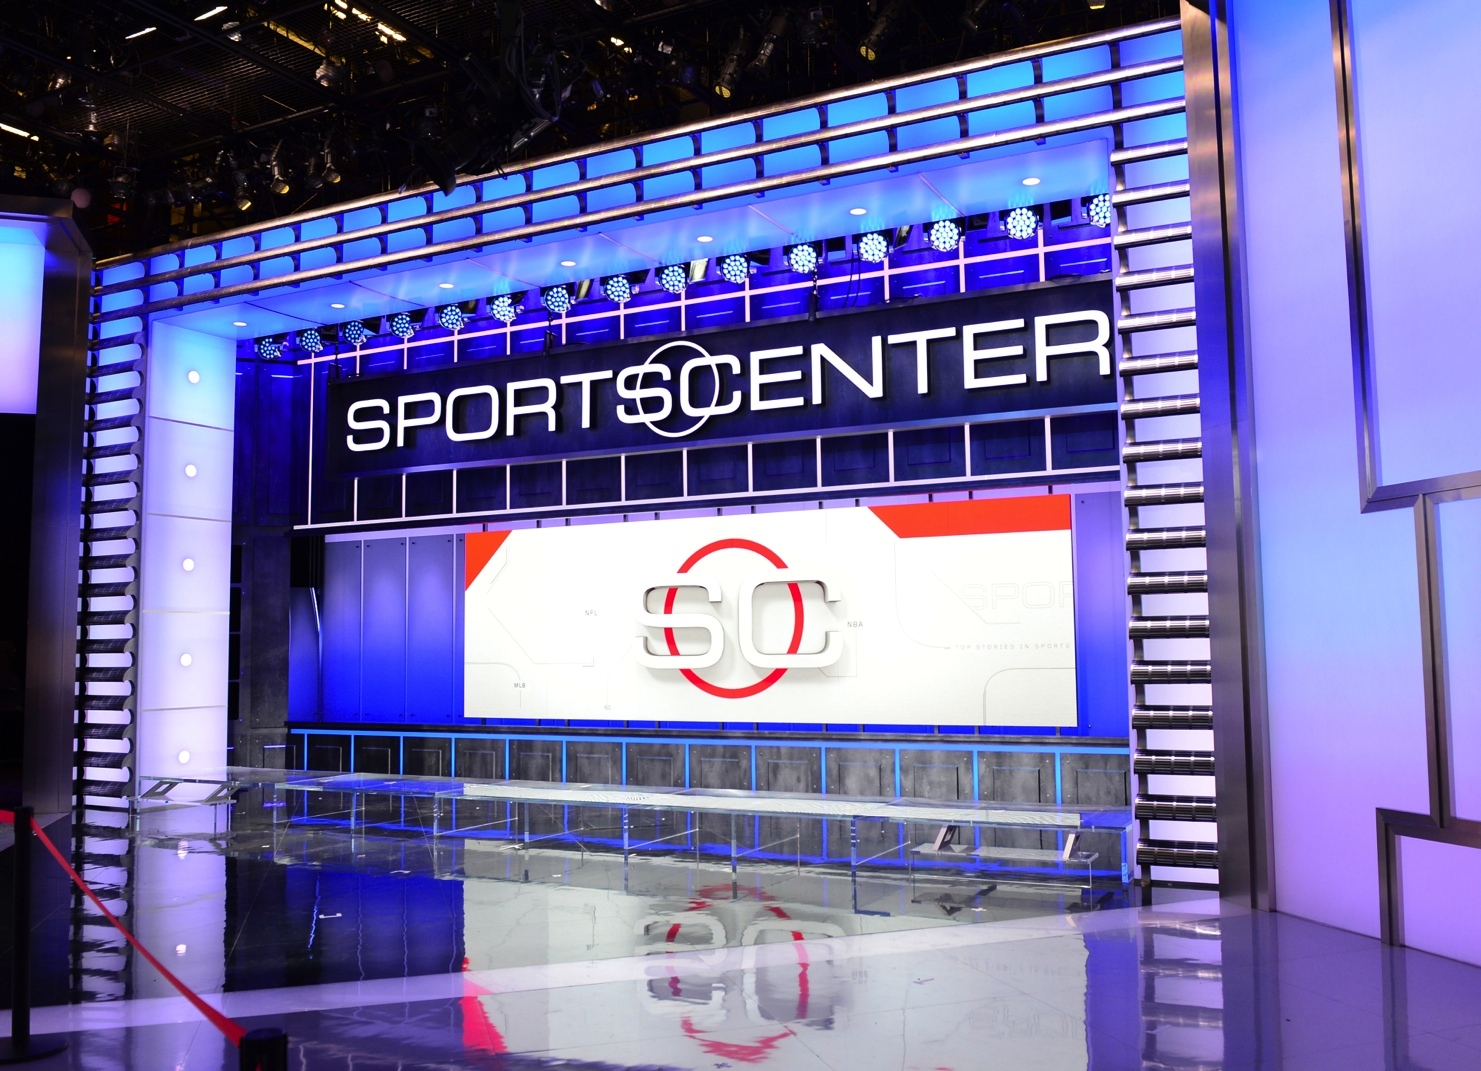 Espn Sportscenter Set 02 Jpg